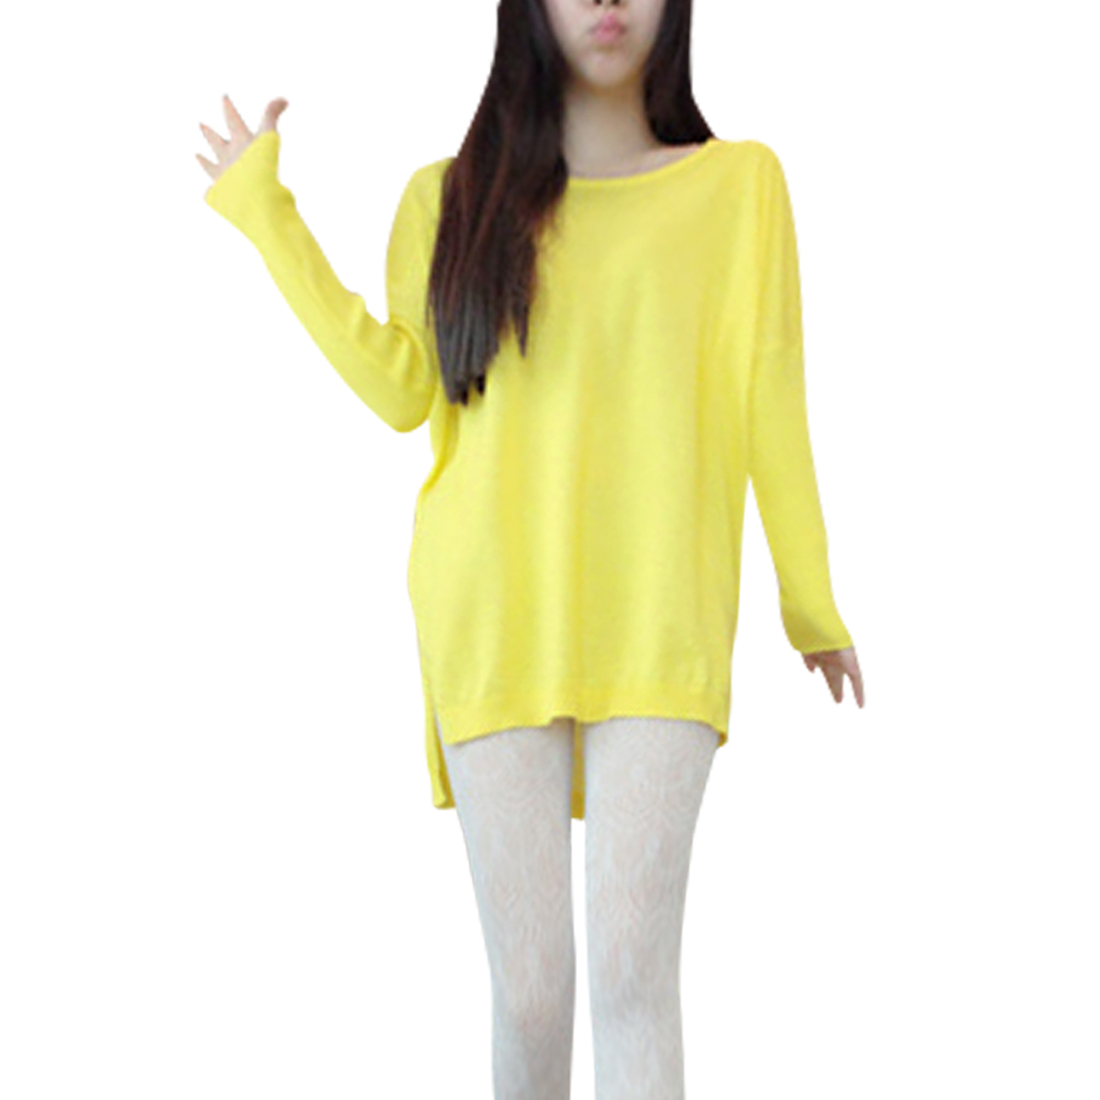 Ladies Stretchy Scoop Neck Yellow Knitted Tunic Shirt XS